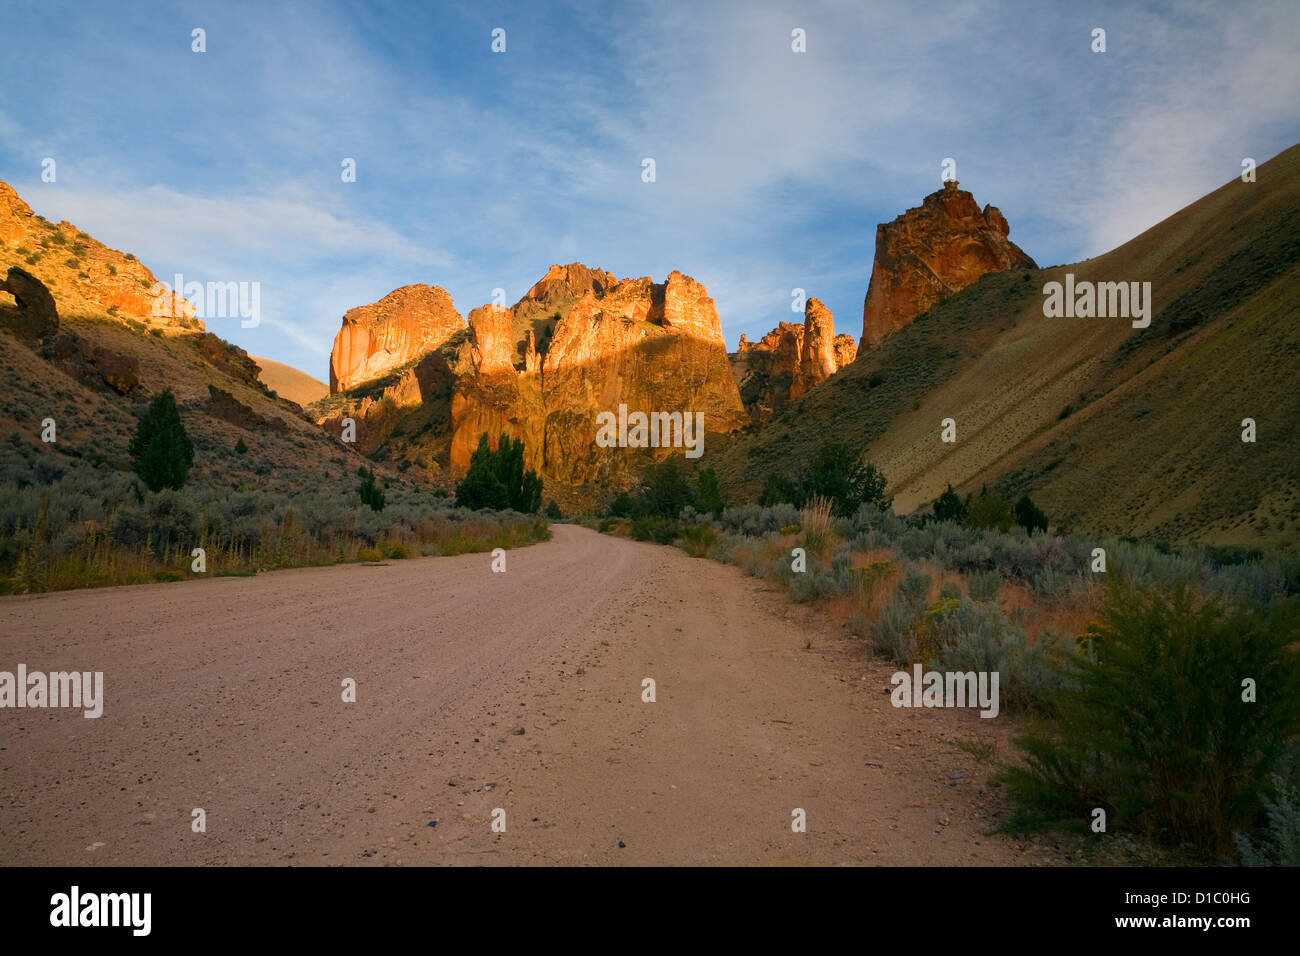 OR00849-00...OREGON - Road through the winding Leslie Gulch. - Stock Image